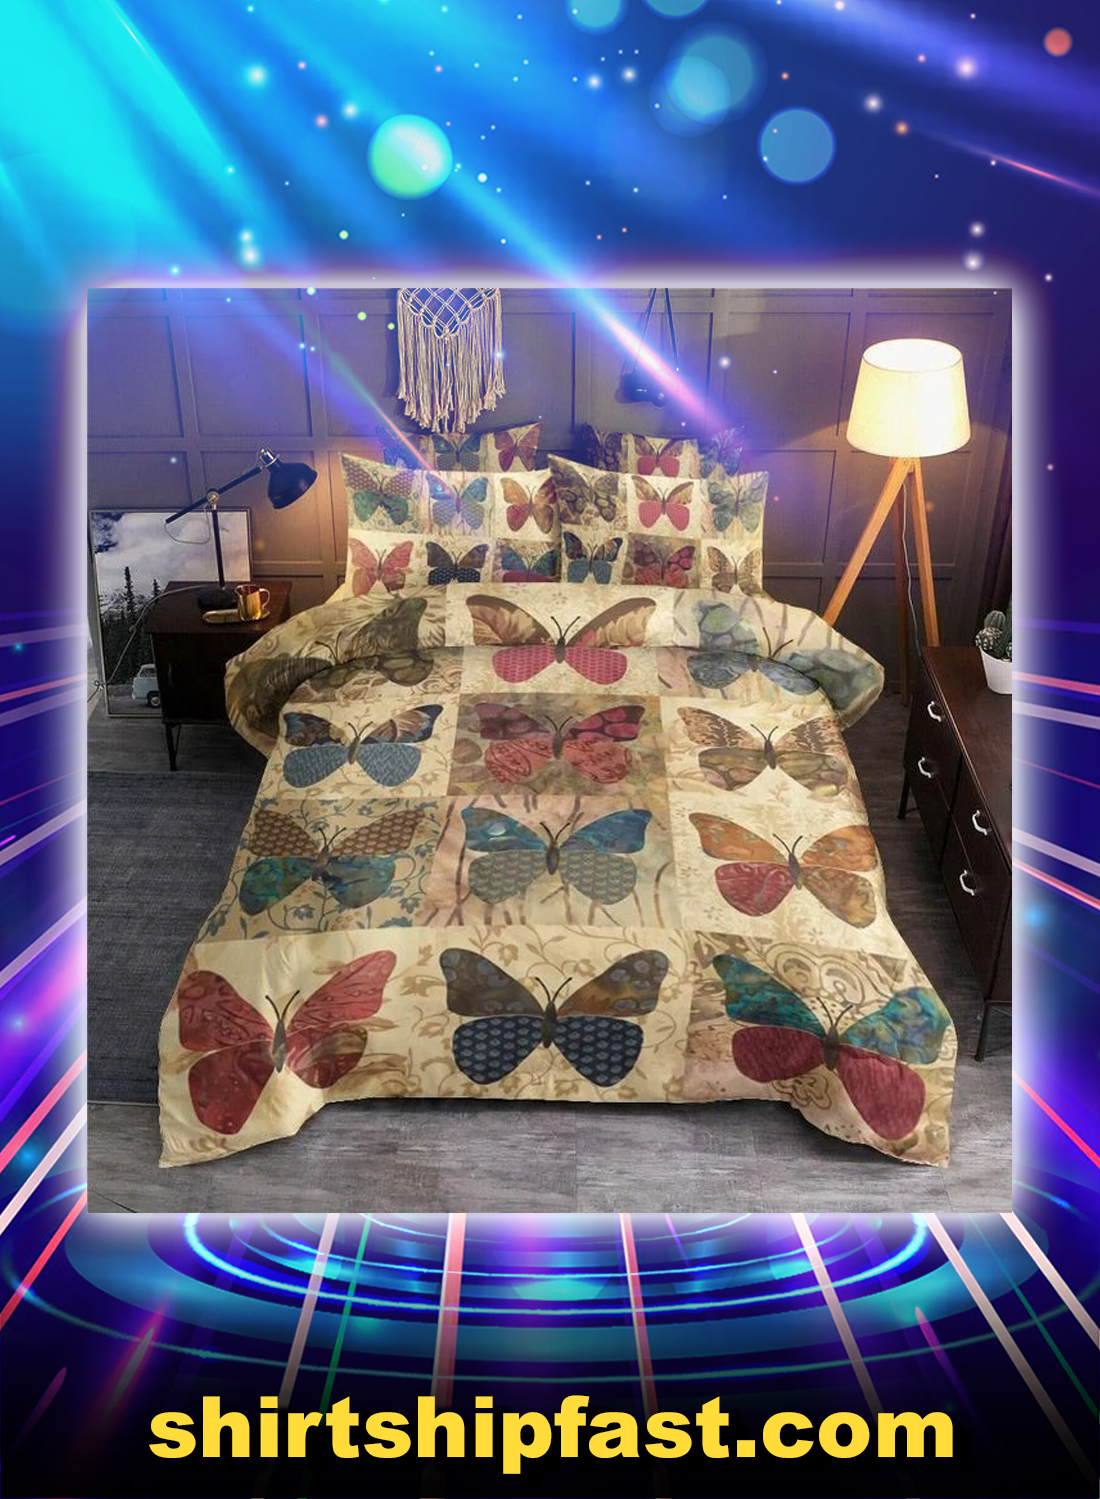 Butterfly bedding set - Picture 1